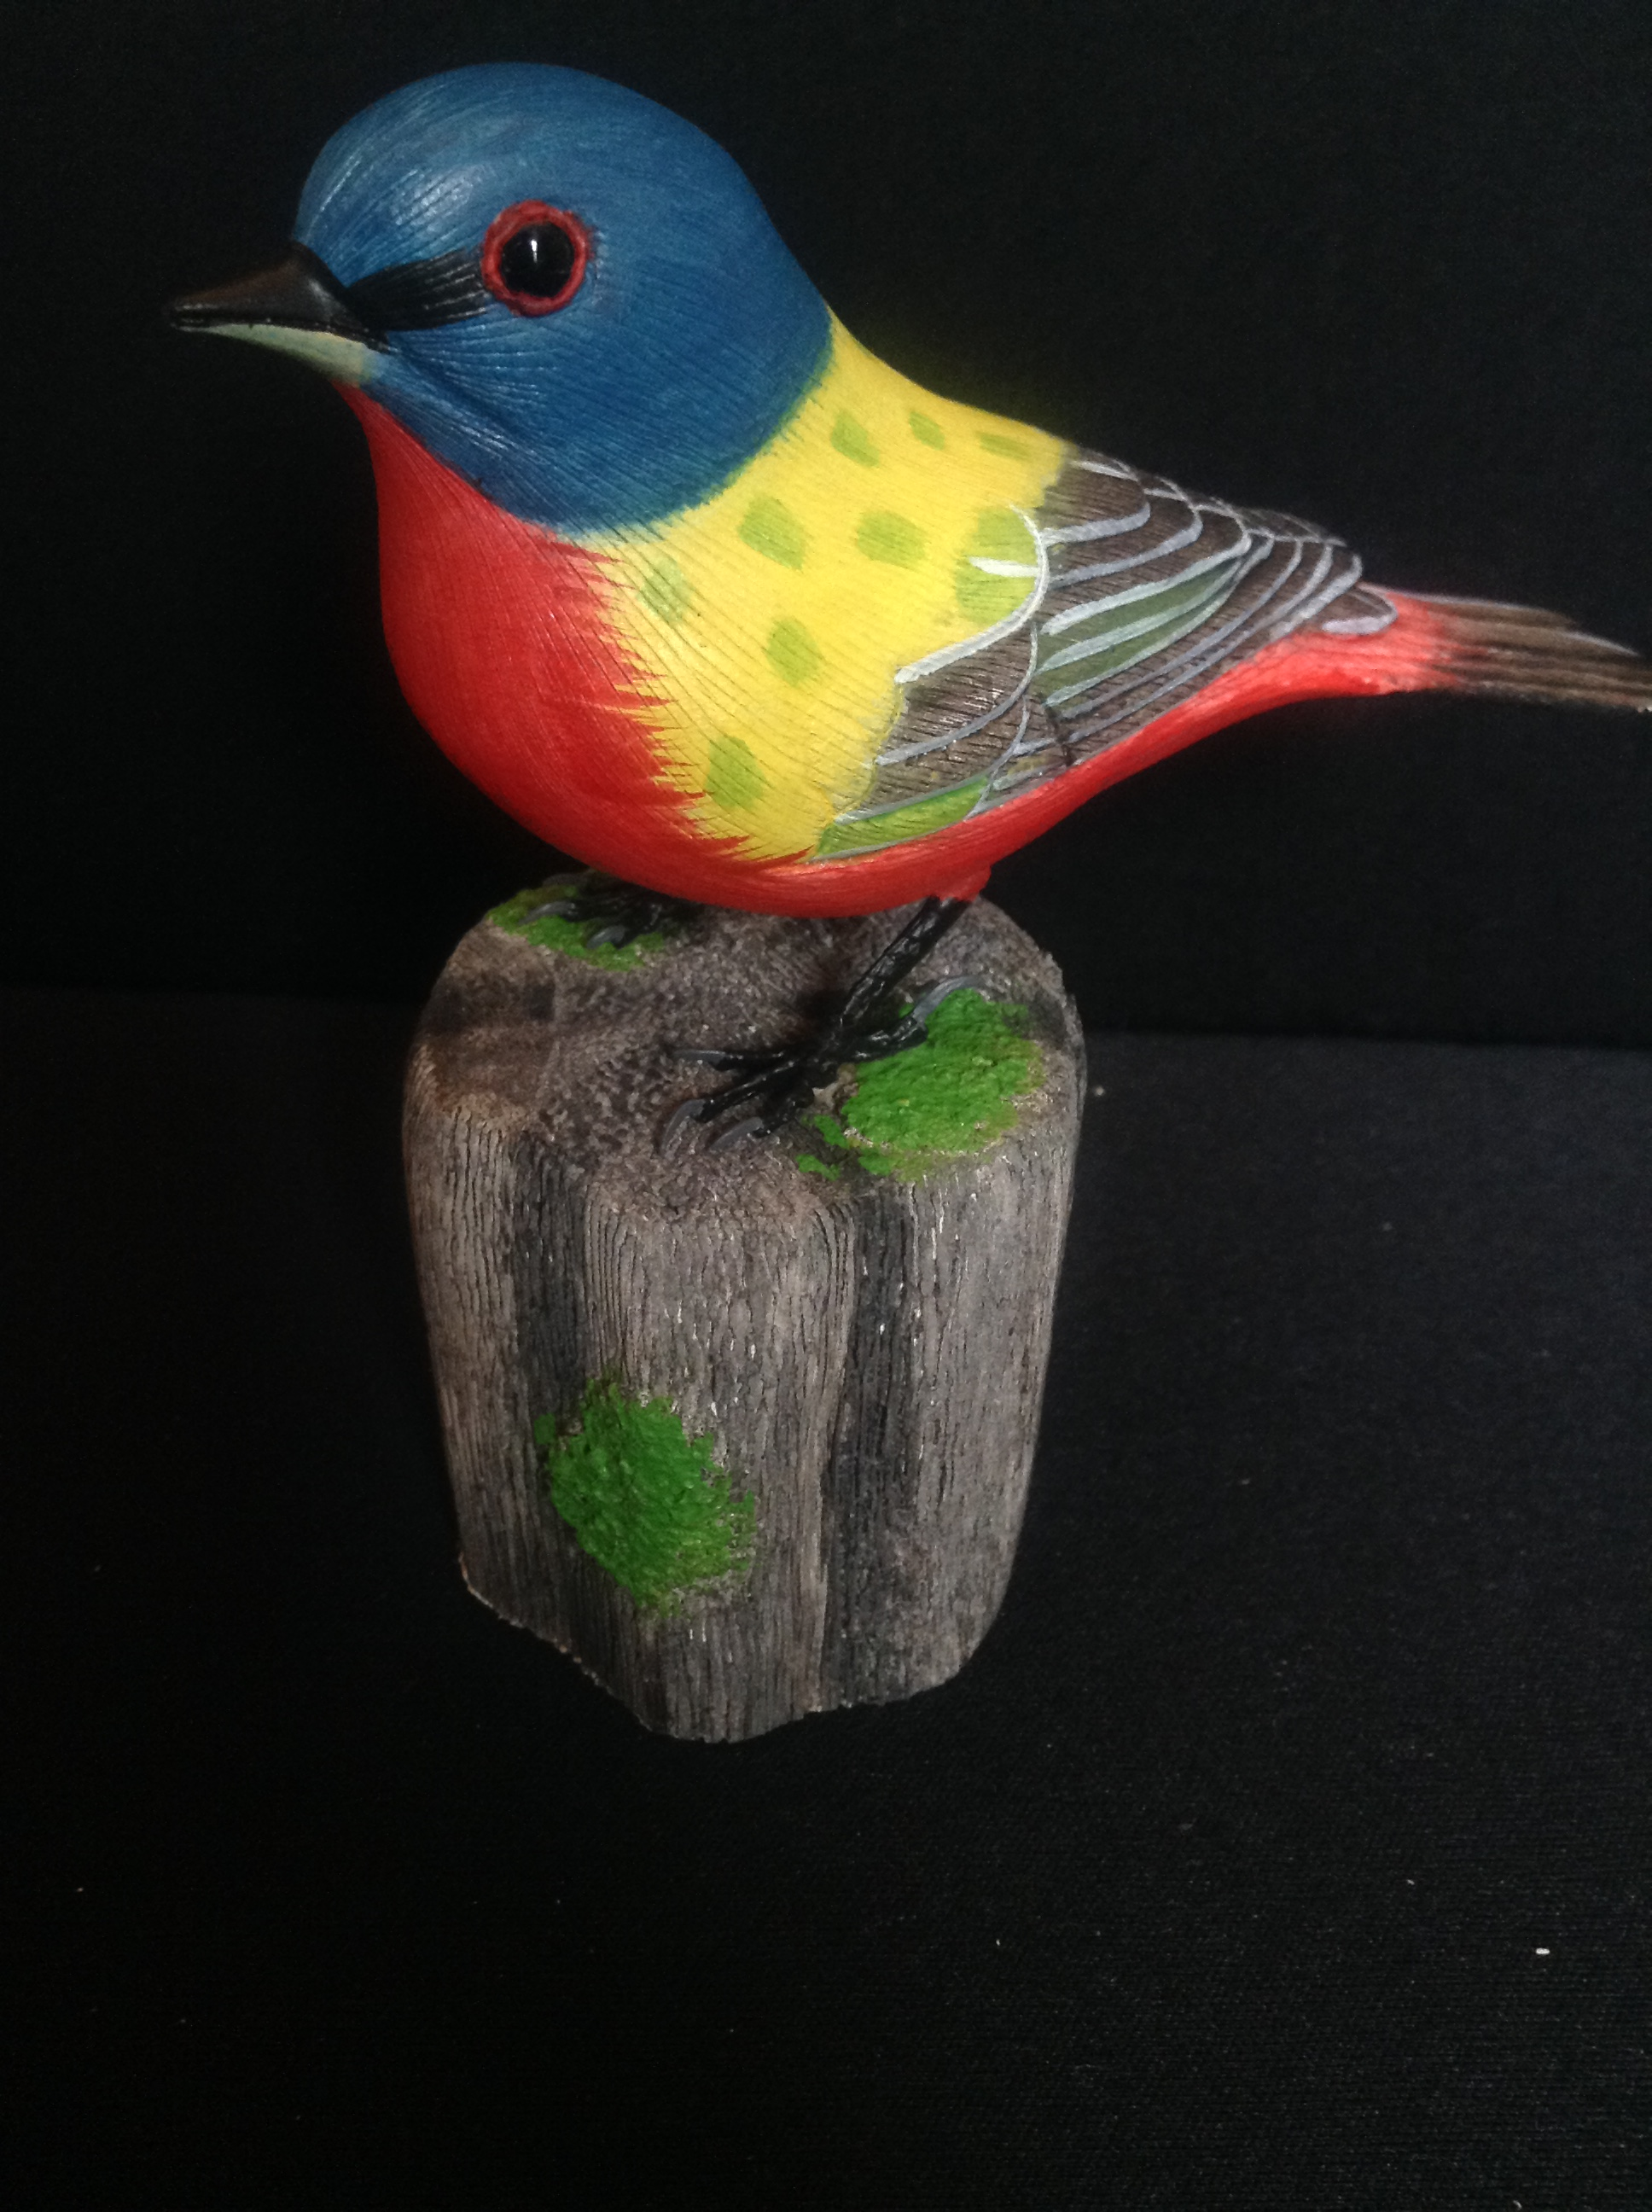 Painted_bunting_4e9ef5927f982.jpg